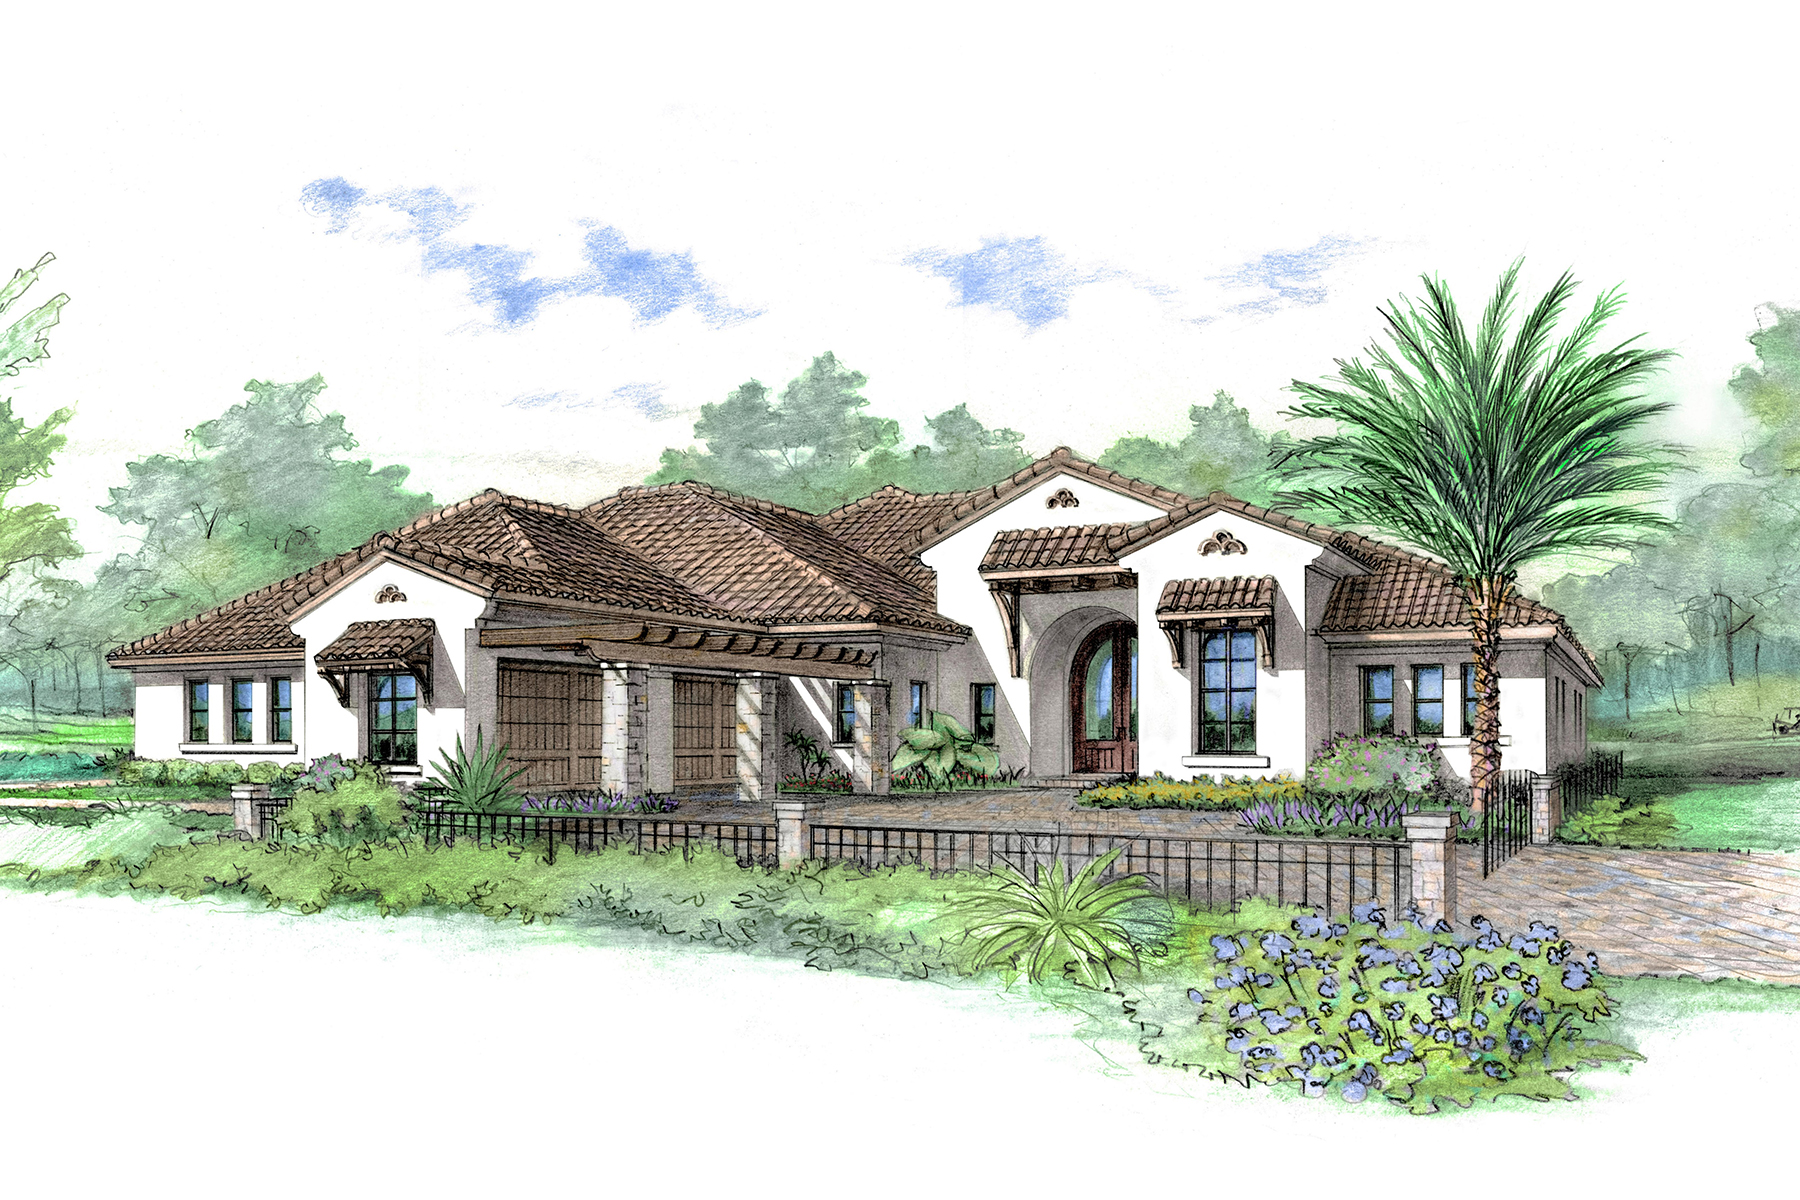 Single Family Homes for Active at LUTZ 16904 Villalagos De Avila Lutz, Florida 33548 United States